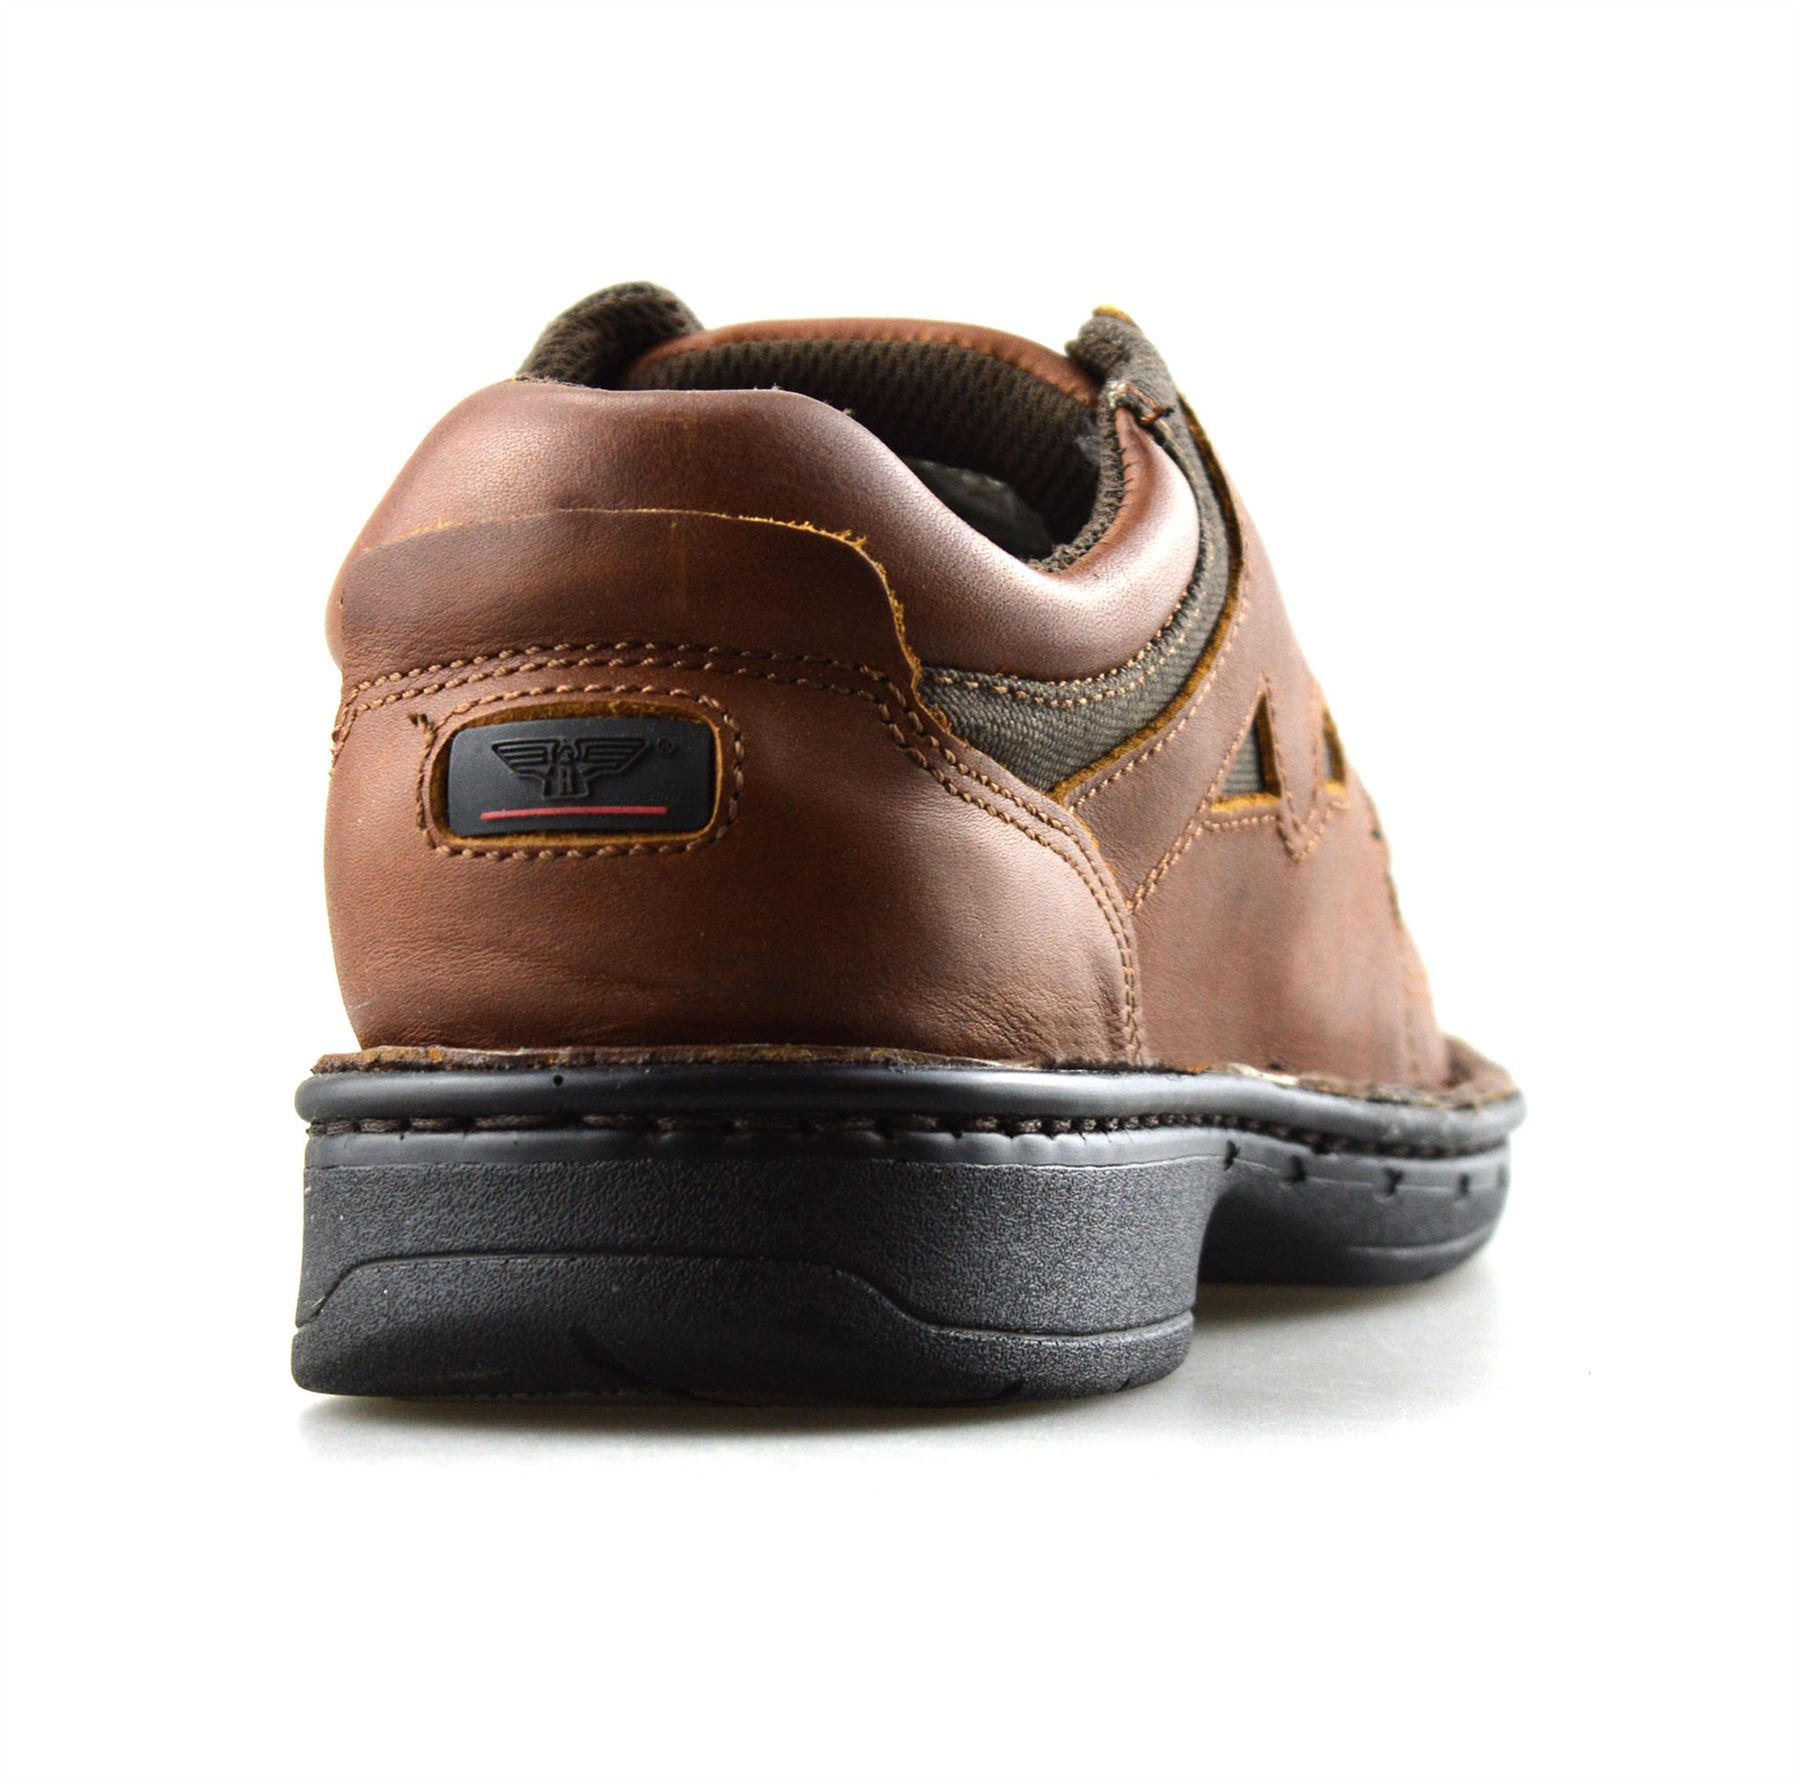 Mens-Leather-Casual-Smart-Lace-Up-Walking-Work-Moccasin-Driving-Boat-Shoes-Size thumbnail 10